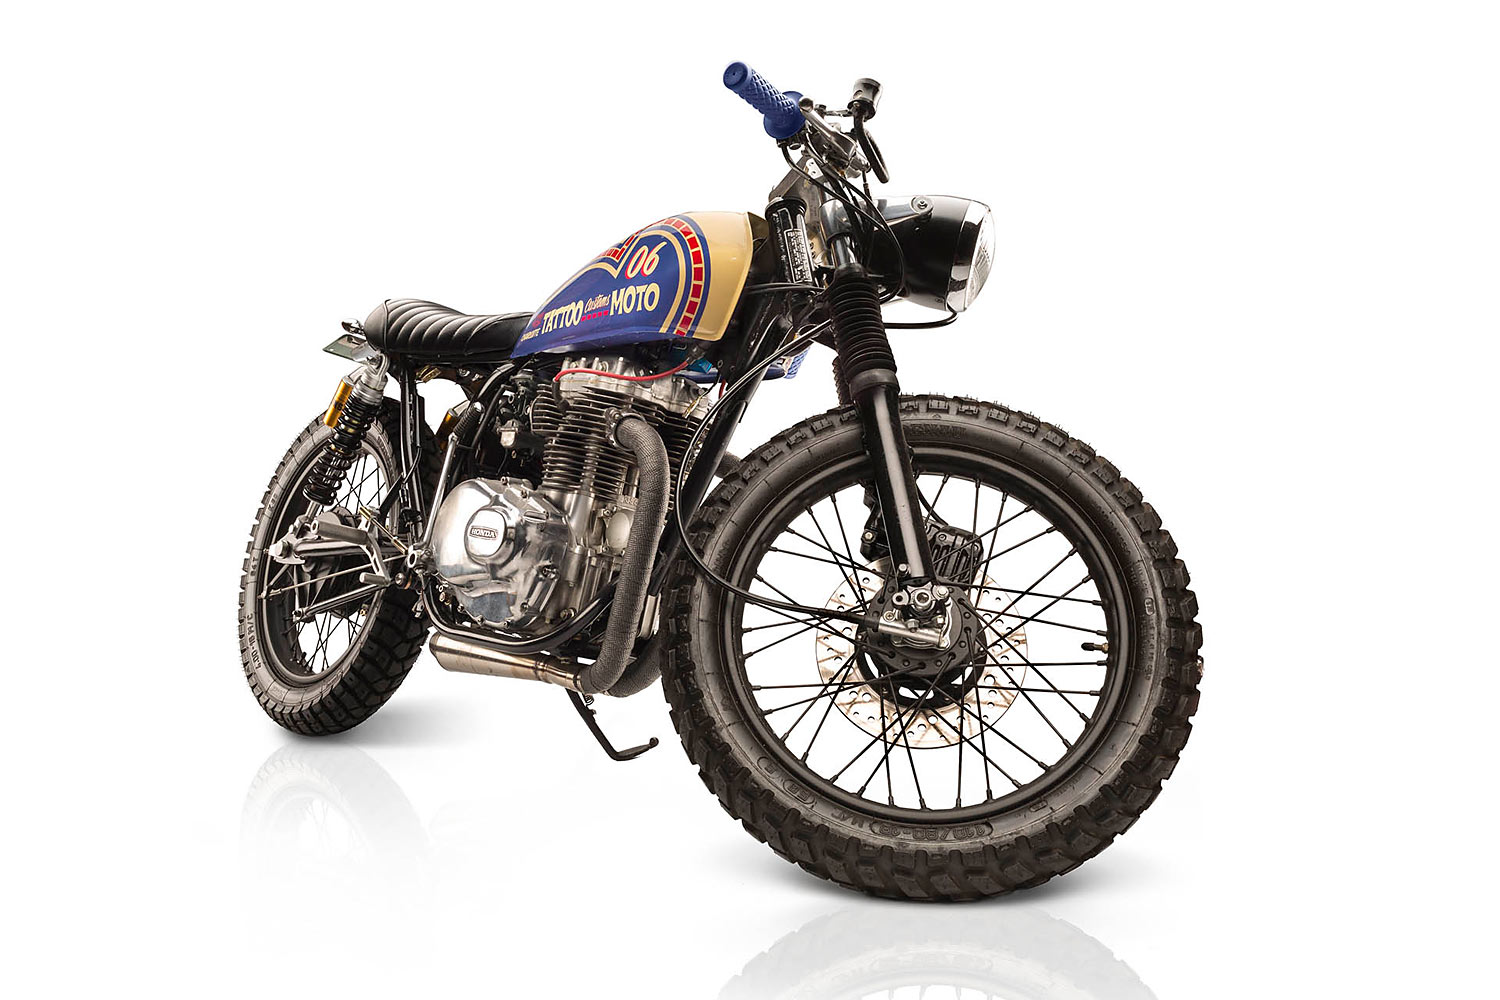 Wanting One Last Hurrah For 2017 They Rolled Up Their Office Sleeves And Got To Work On A 1974 Honda CB360 That Had Been Hanging Around While